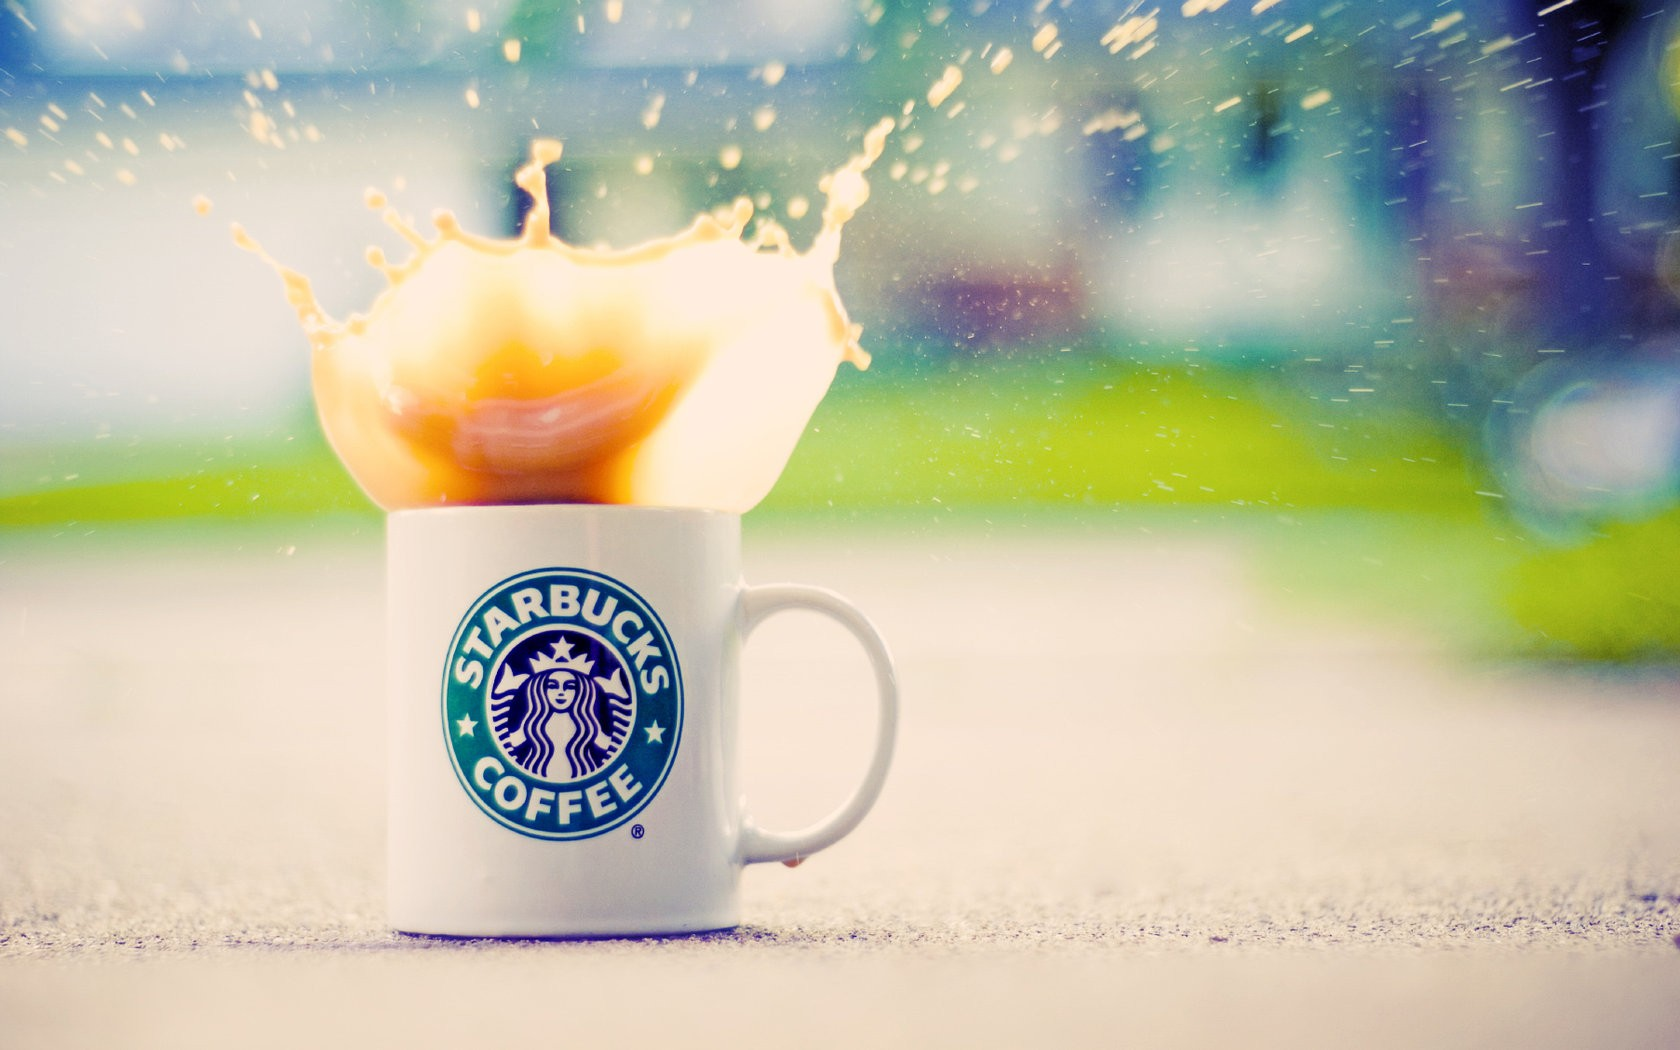 Splashing Starbucks Coffee - Splashing Starbucks Coffee